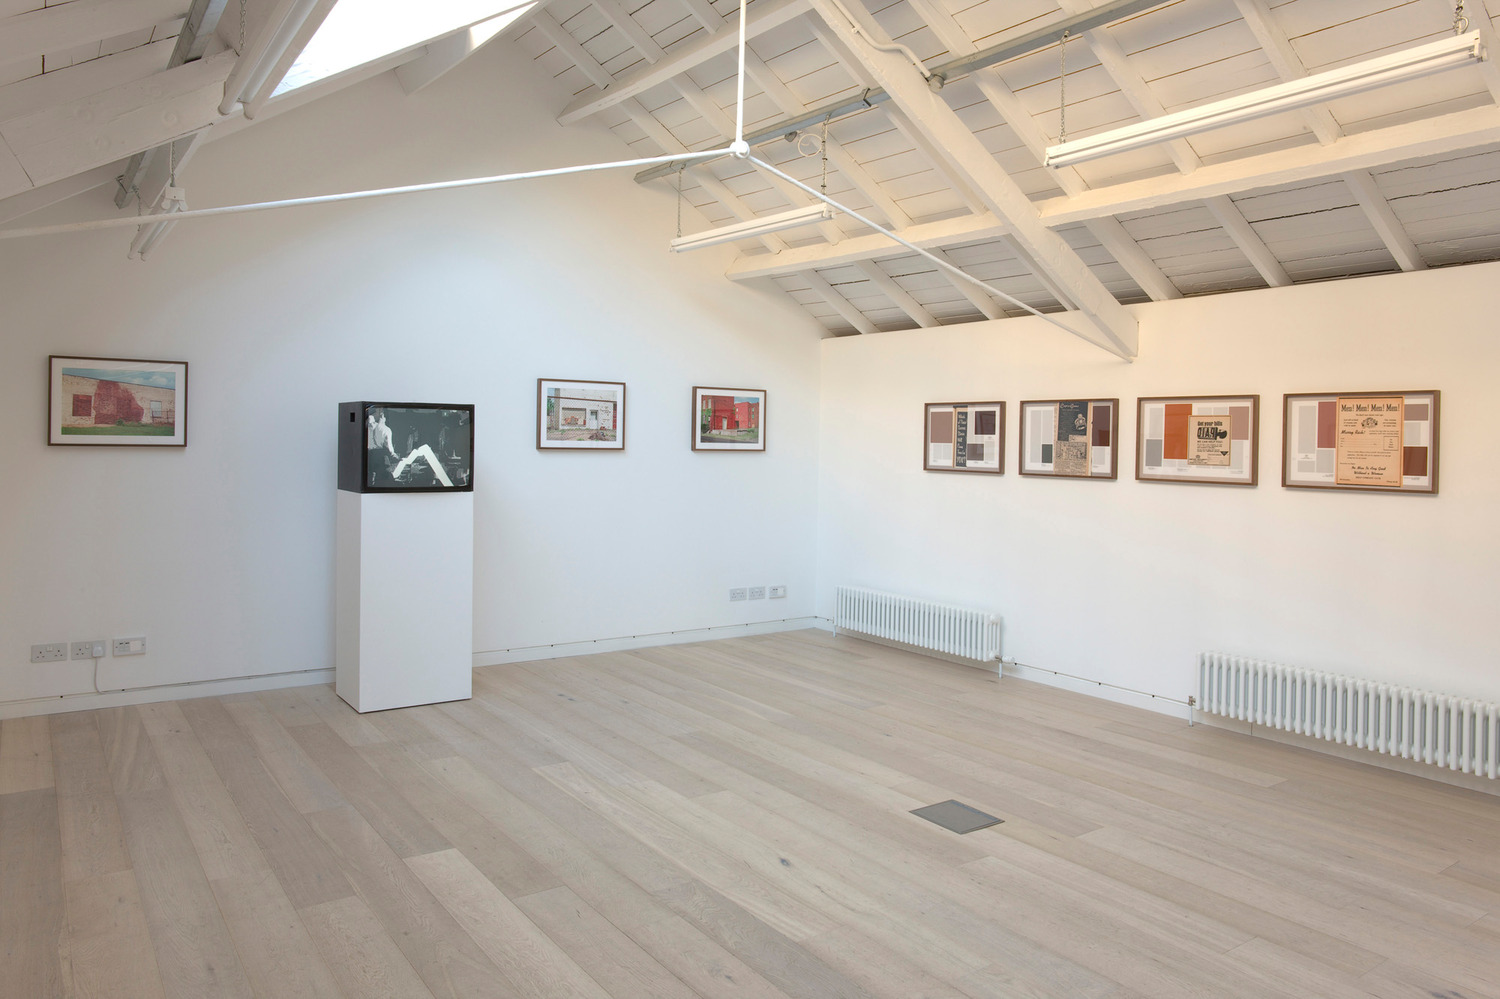 Installation view, Upstairs at The Modern Institute Osborne Street, Glasgow, 2011